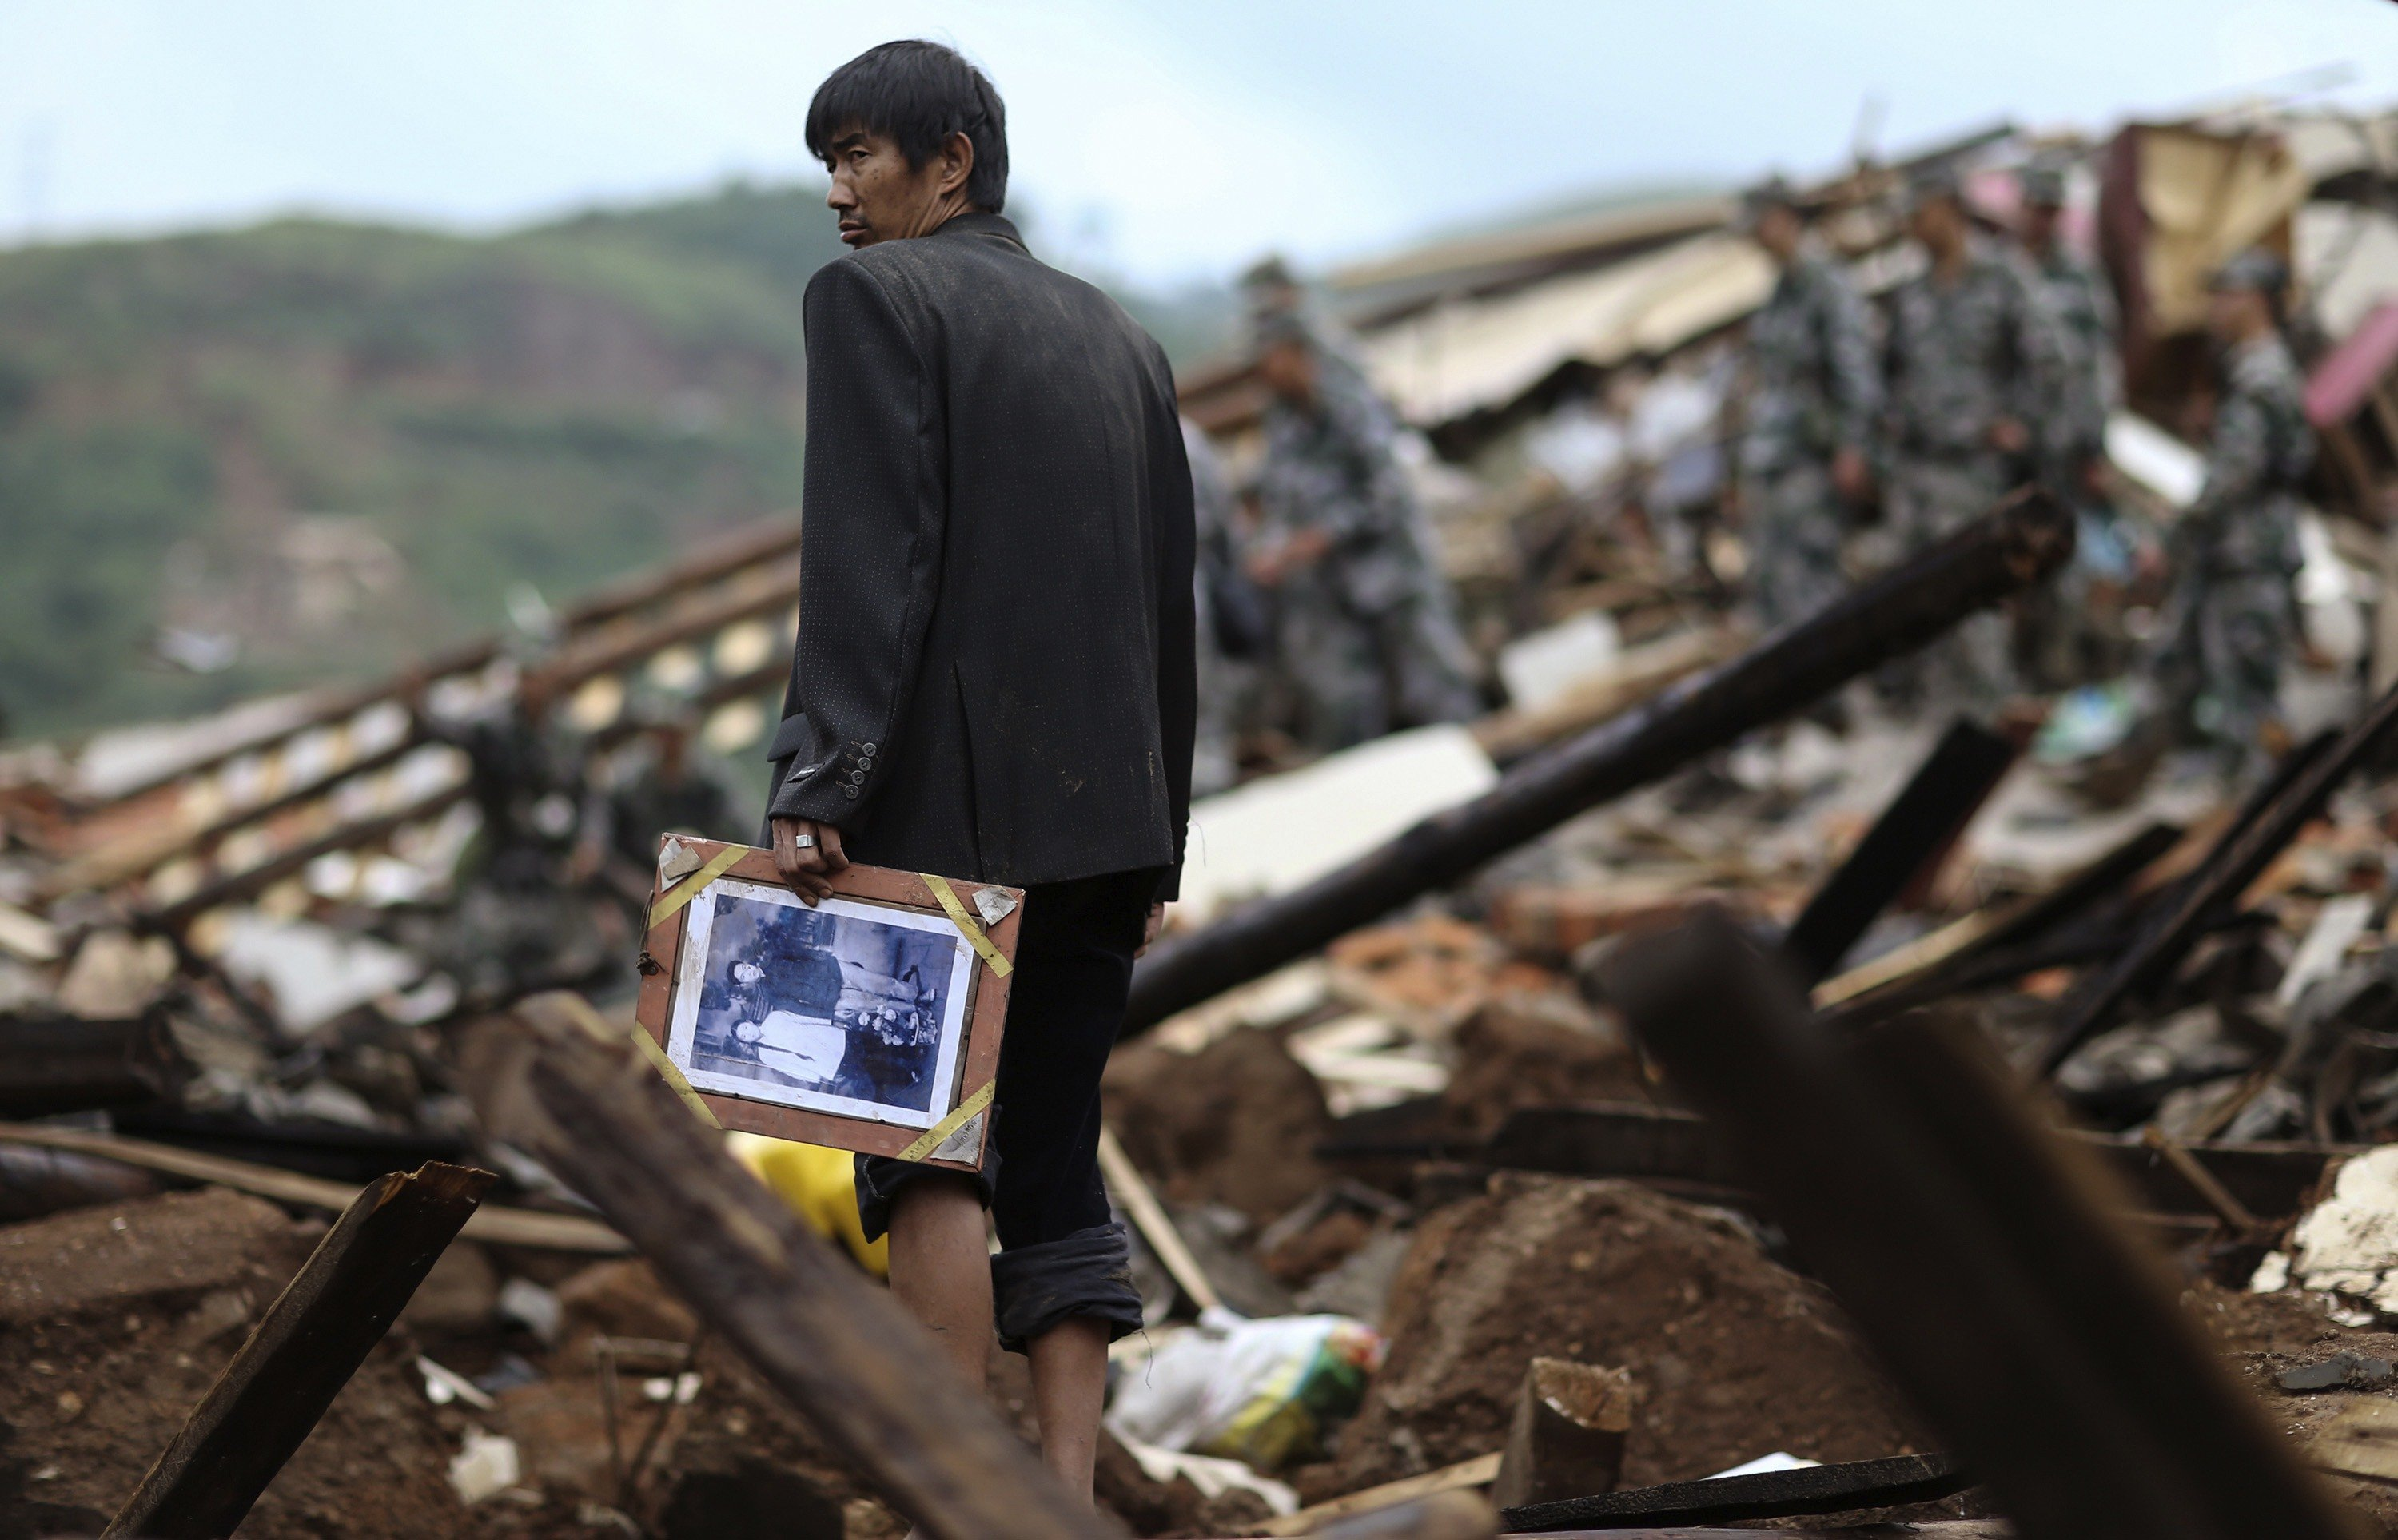 Aug. 4, 2014. A man holds a picture as he stands among debris of collapsed buildings after an earthquake hit Longtoushan township of Ludian county, Yunnan province.